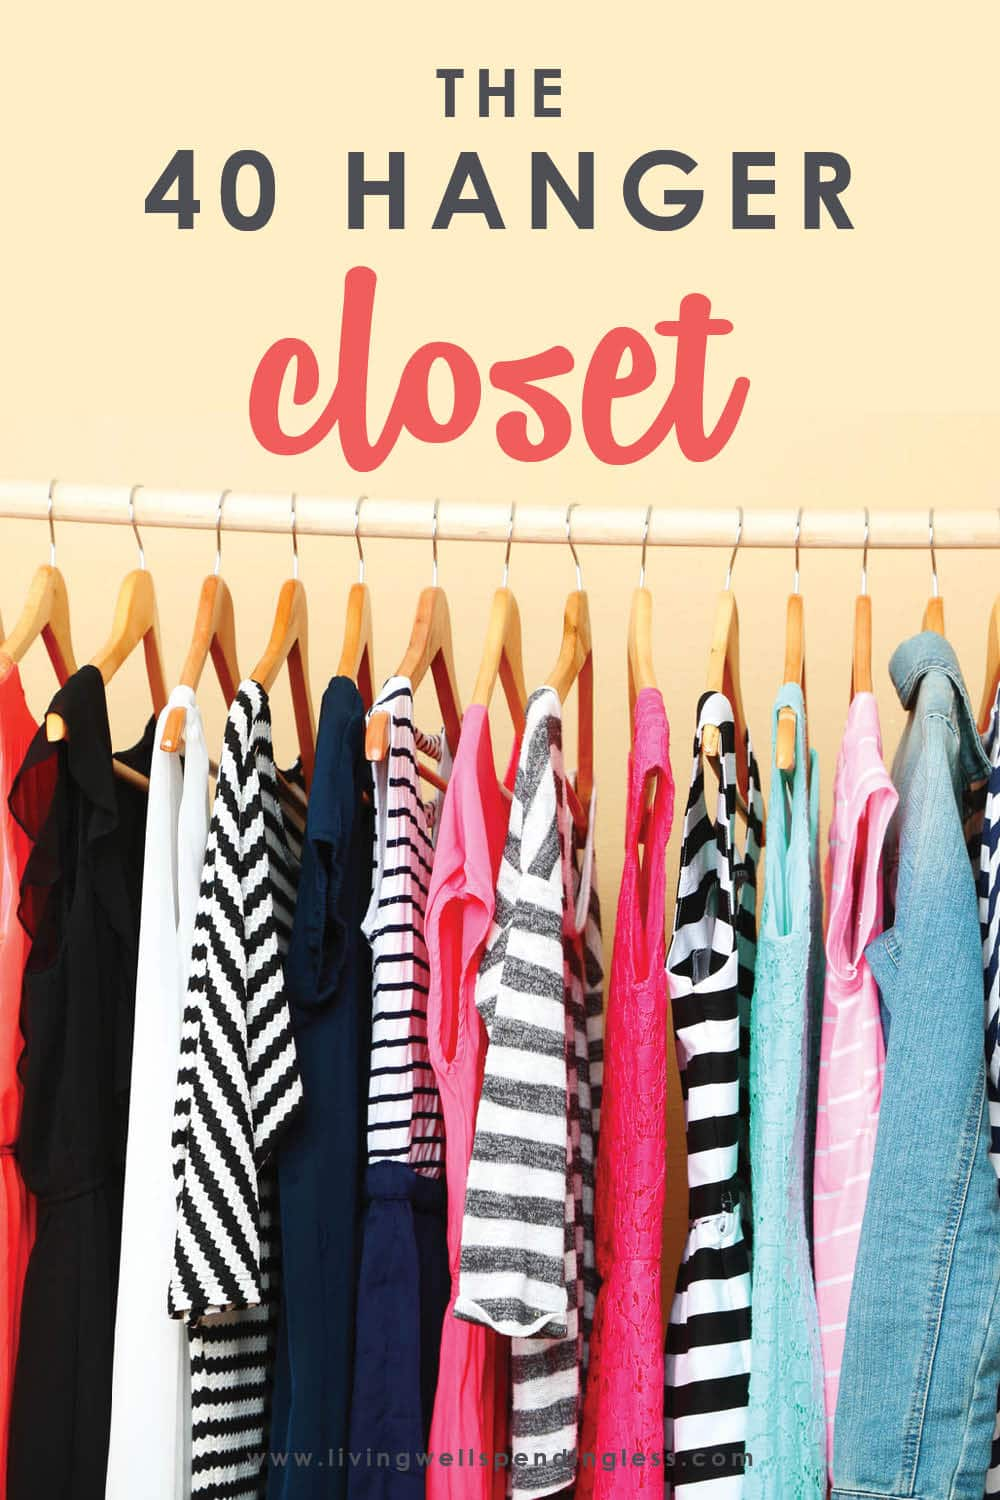 Are you sick of everything in your closet? Use the The 40 Hanger Closet organizing plan to pare down your wardrobe to the perfect essentials. #40hangercloset #closetorganization #organization #decluttering #declutteringtips #tidyingup #mariekondo #clutterfree